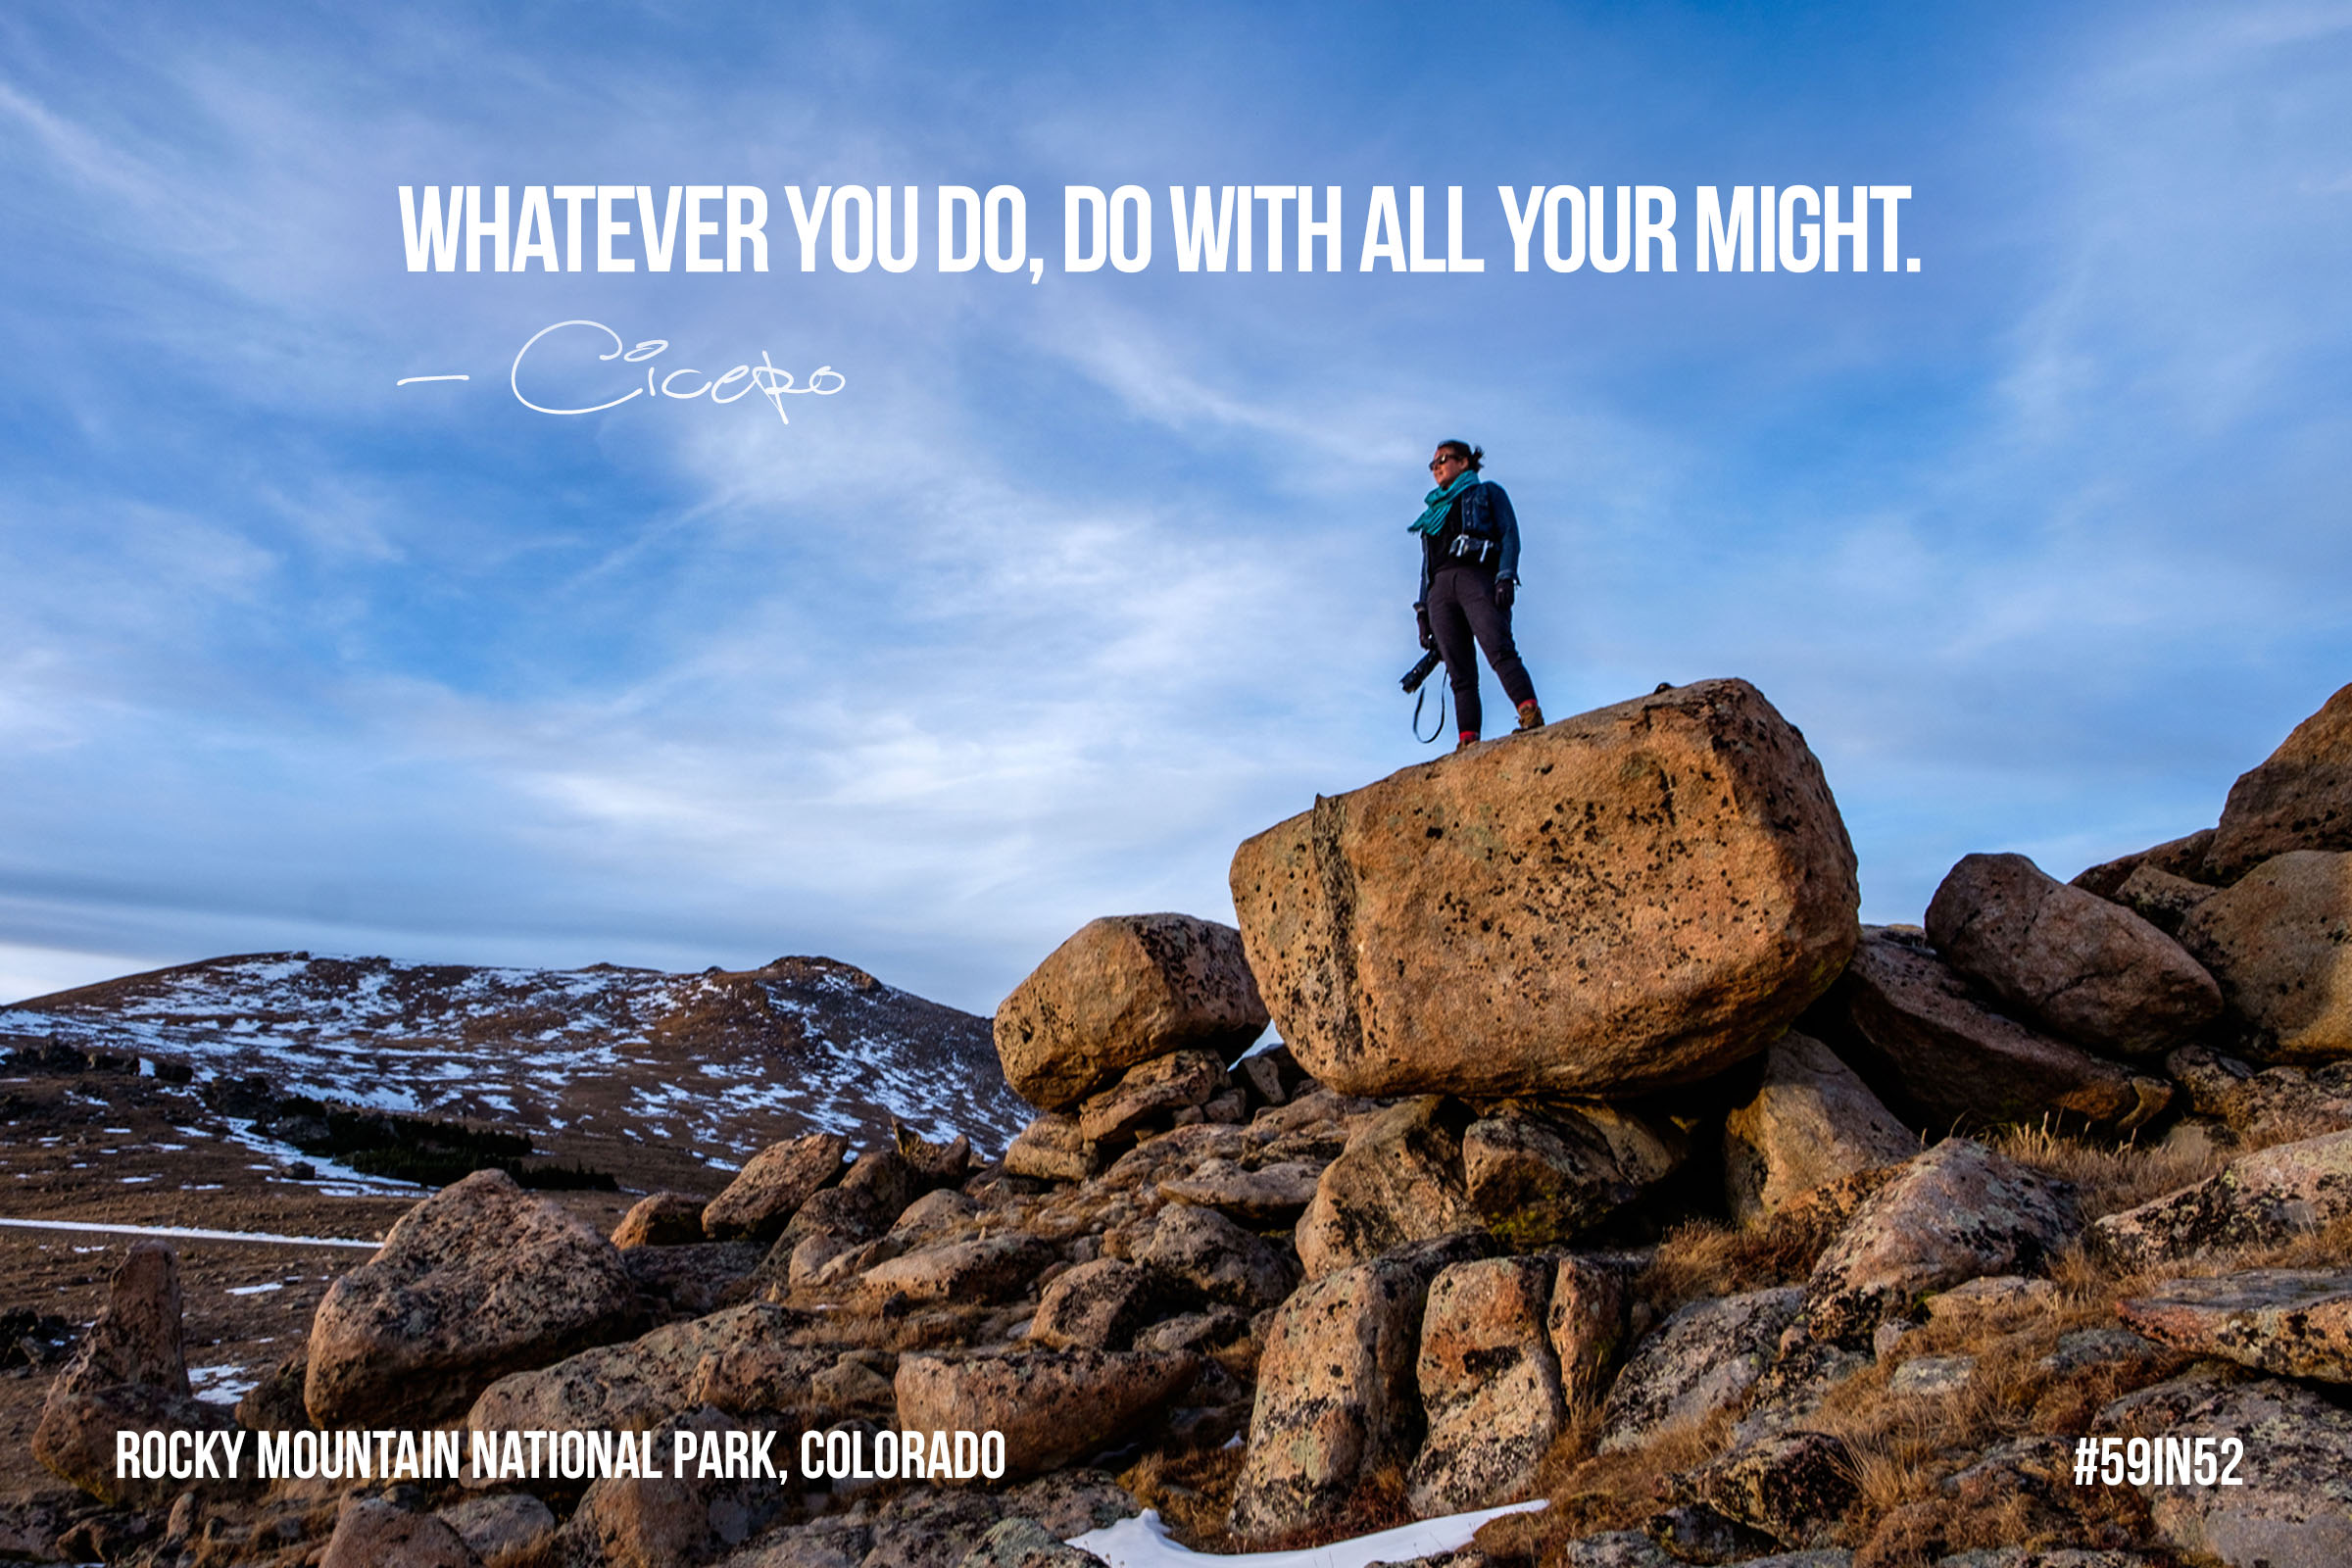 """Whatever you do, do with all your might."" - Cicero"